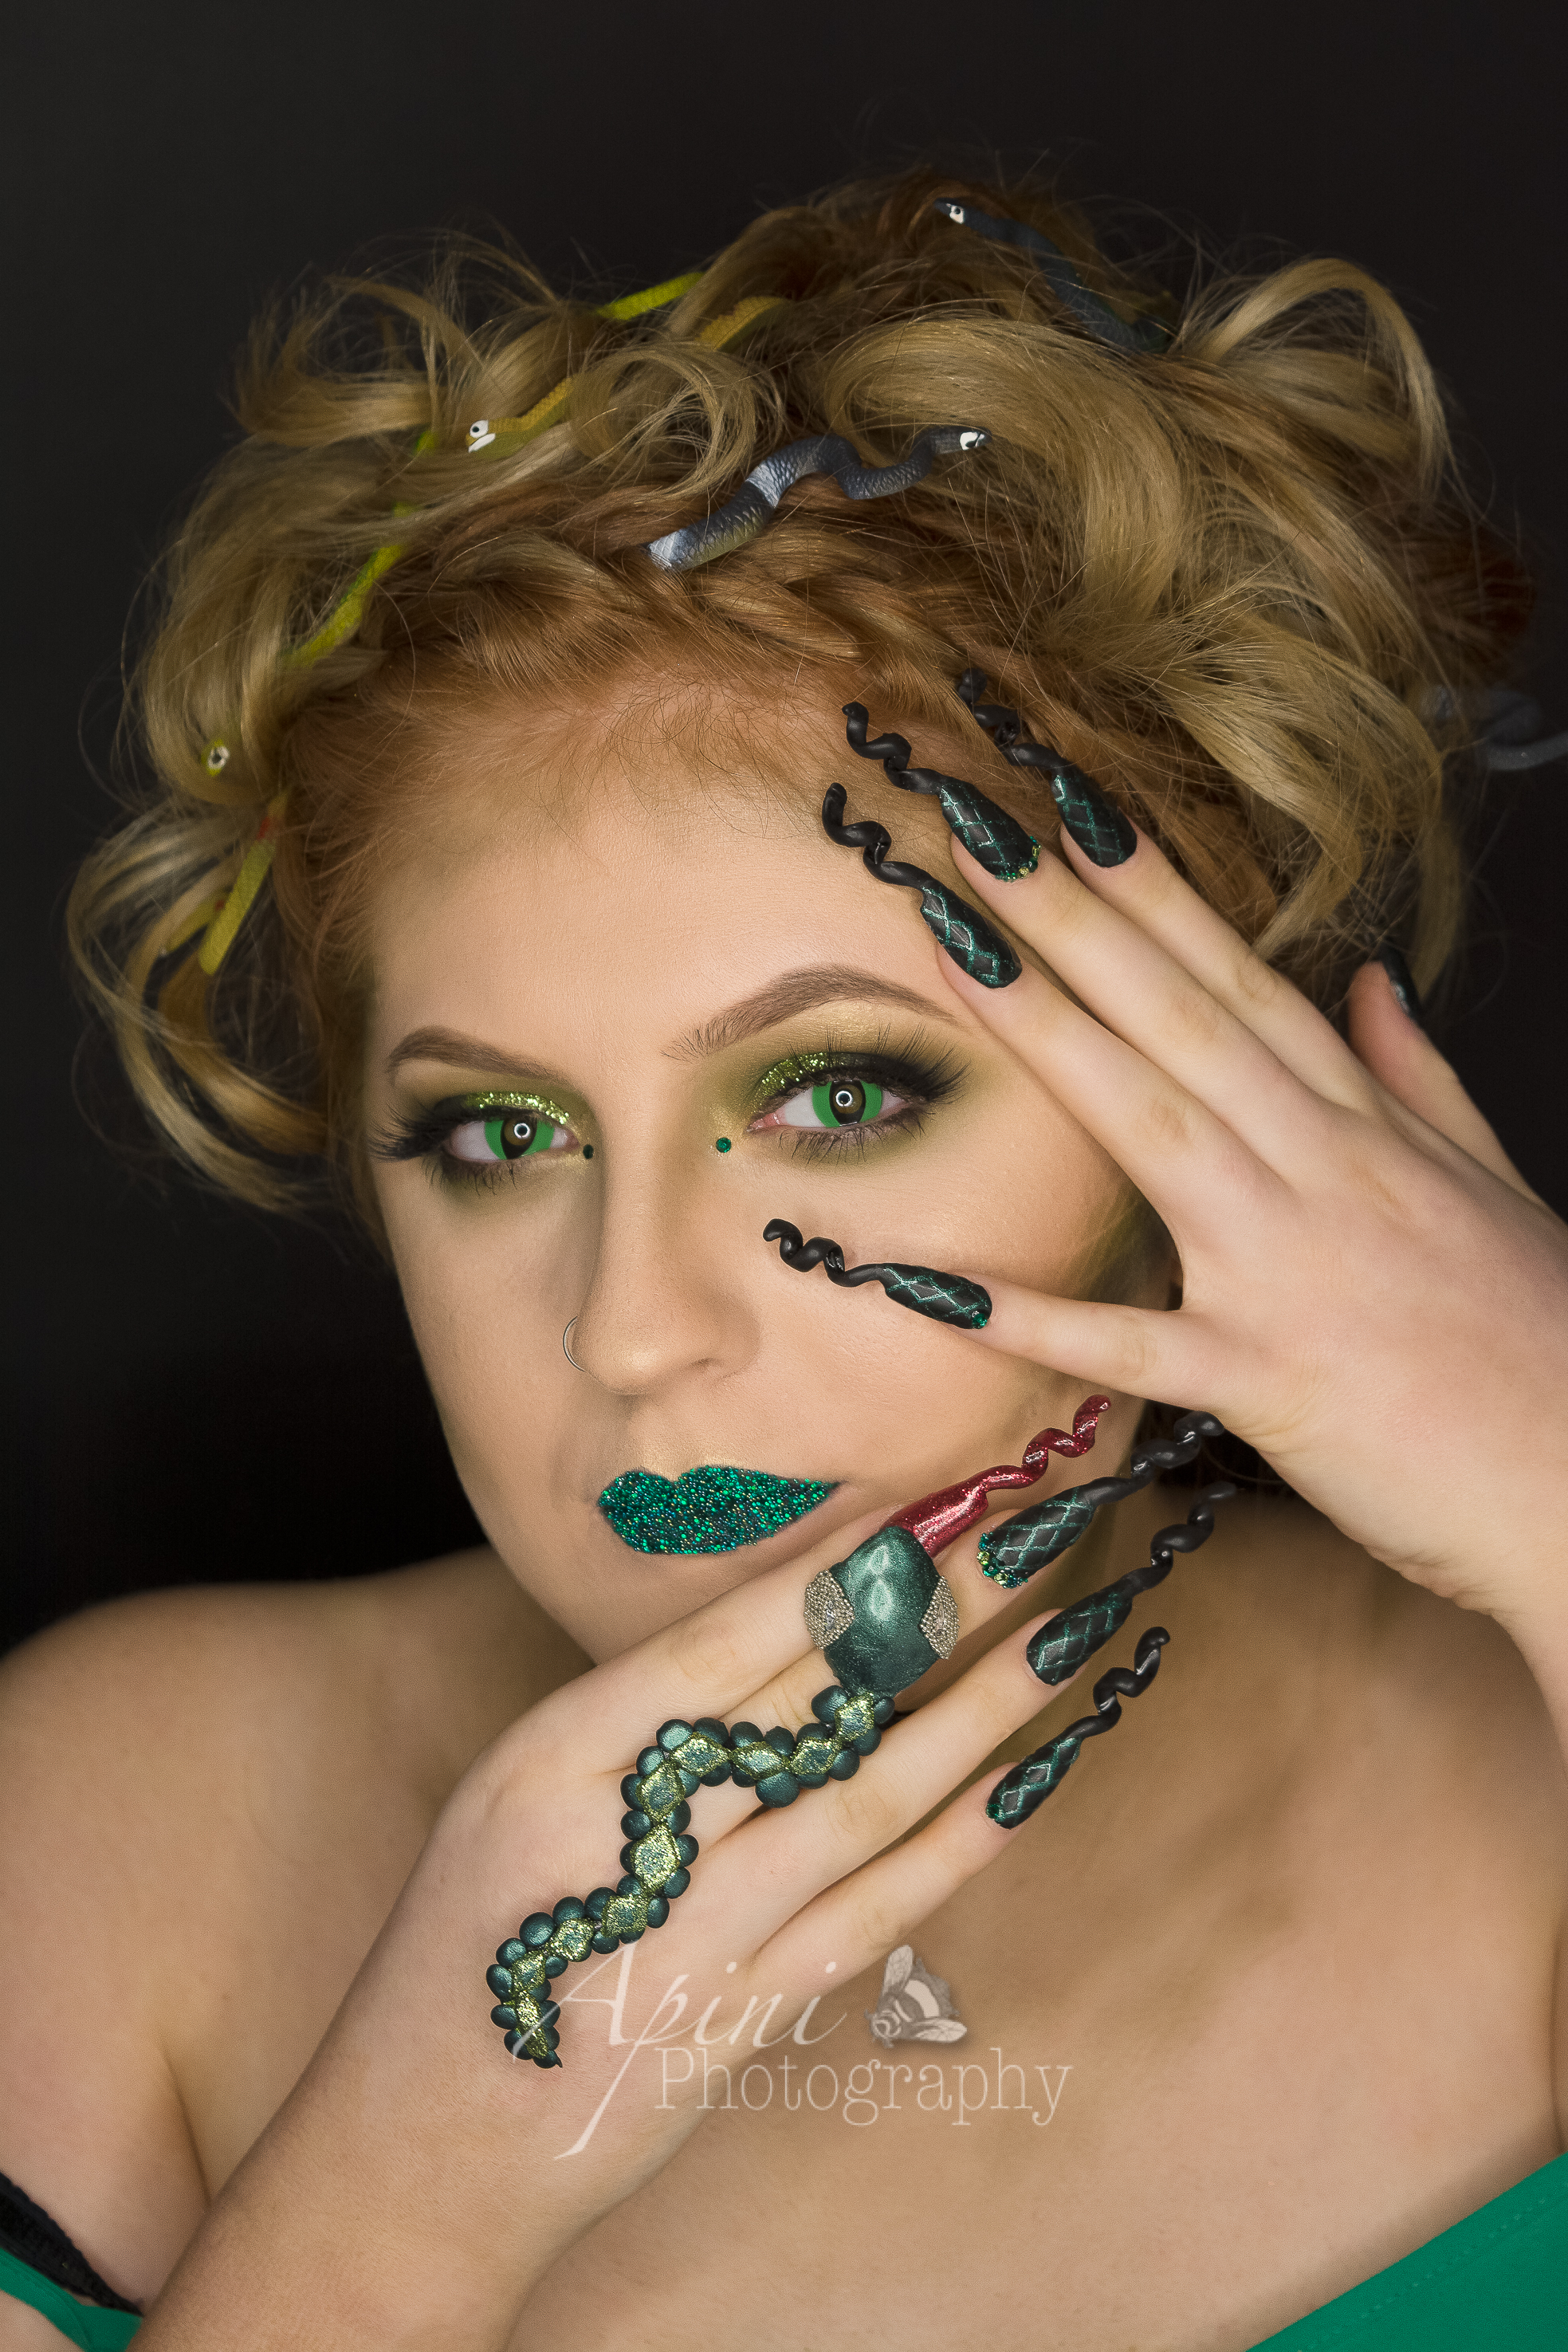 Nail Art Photo Shoot - Medusa